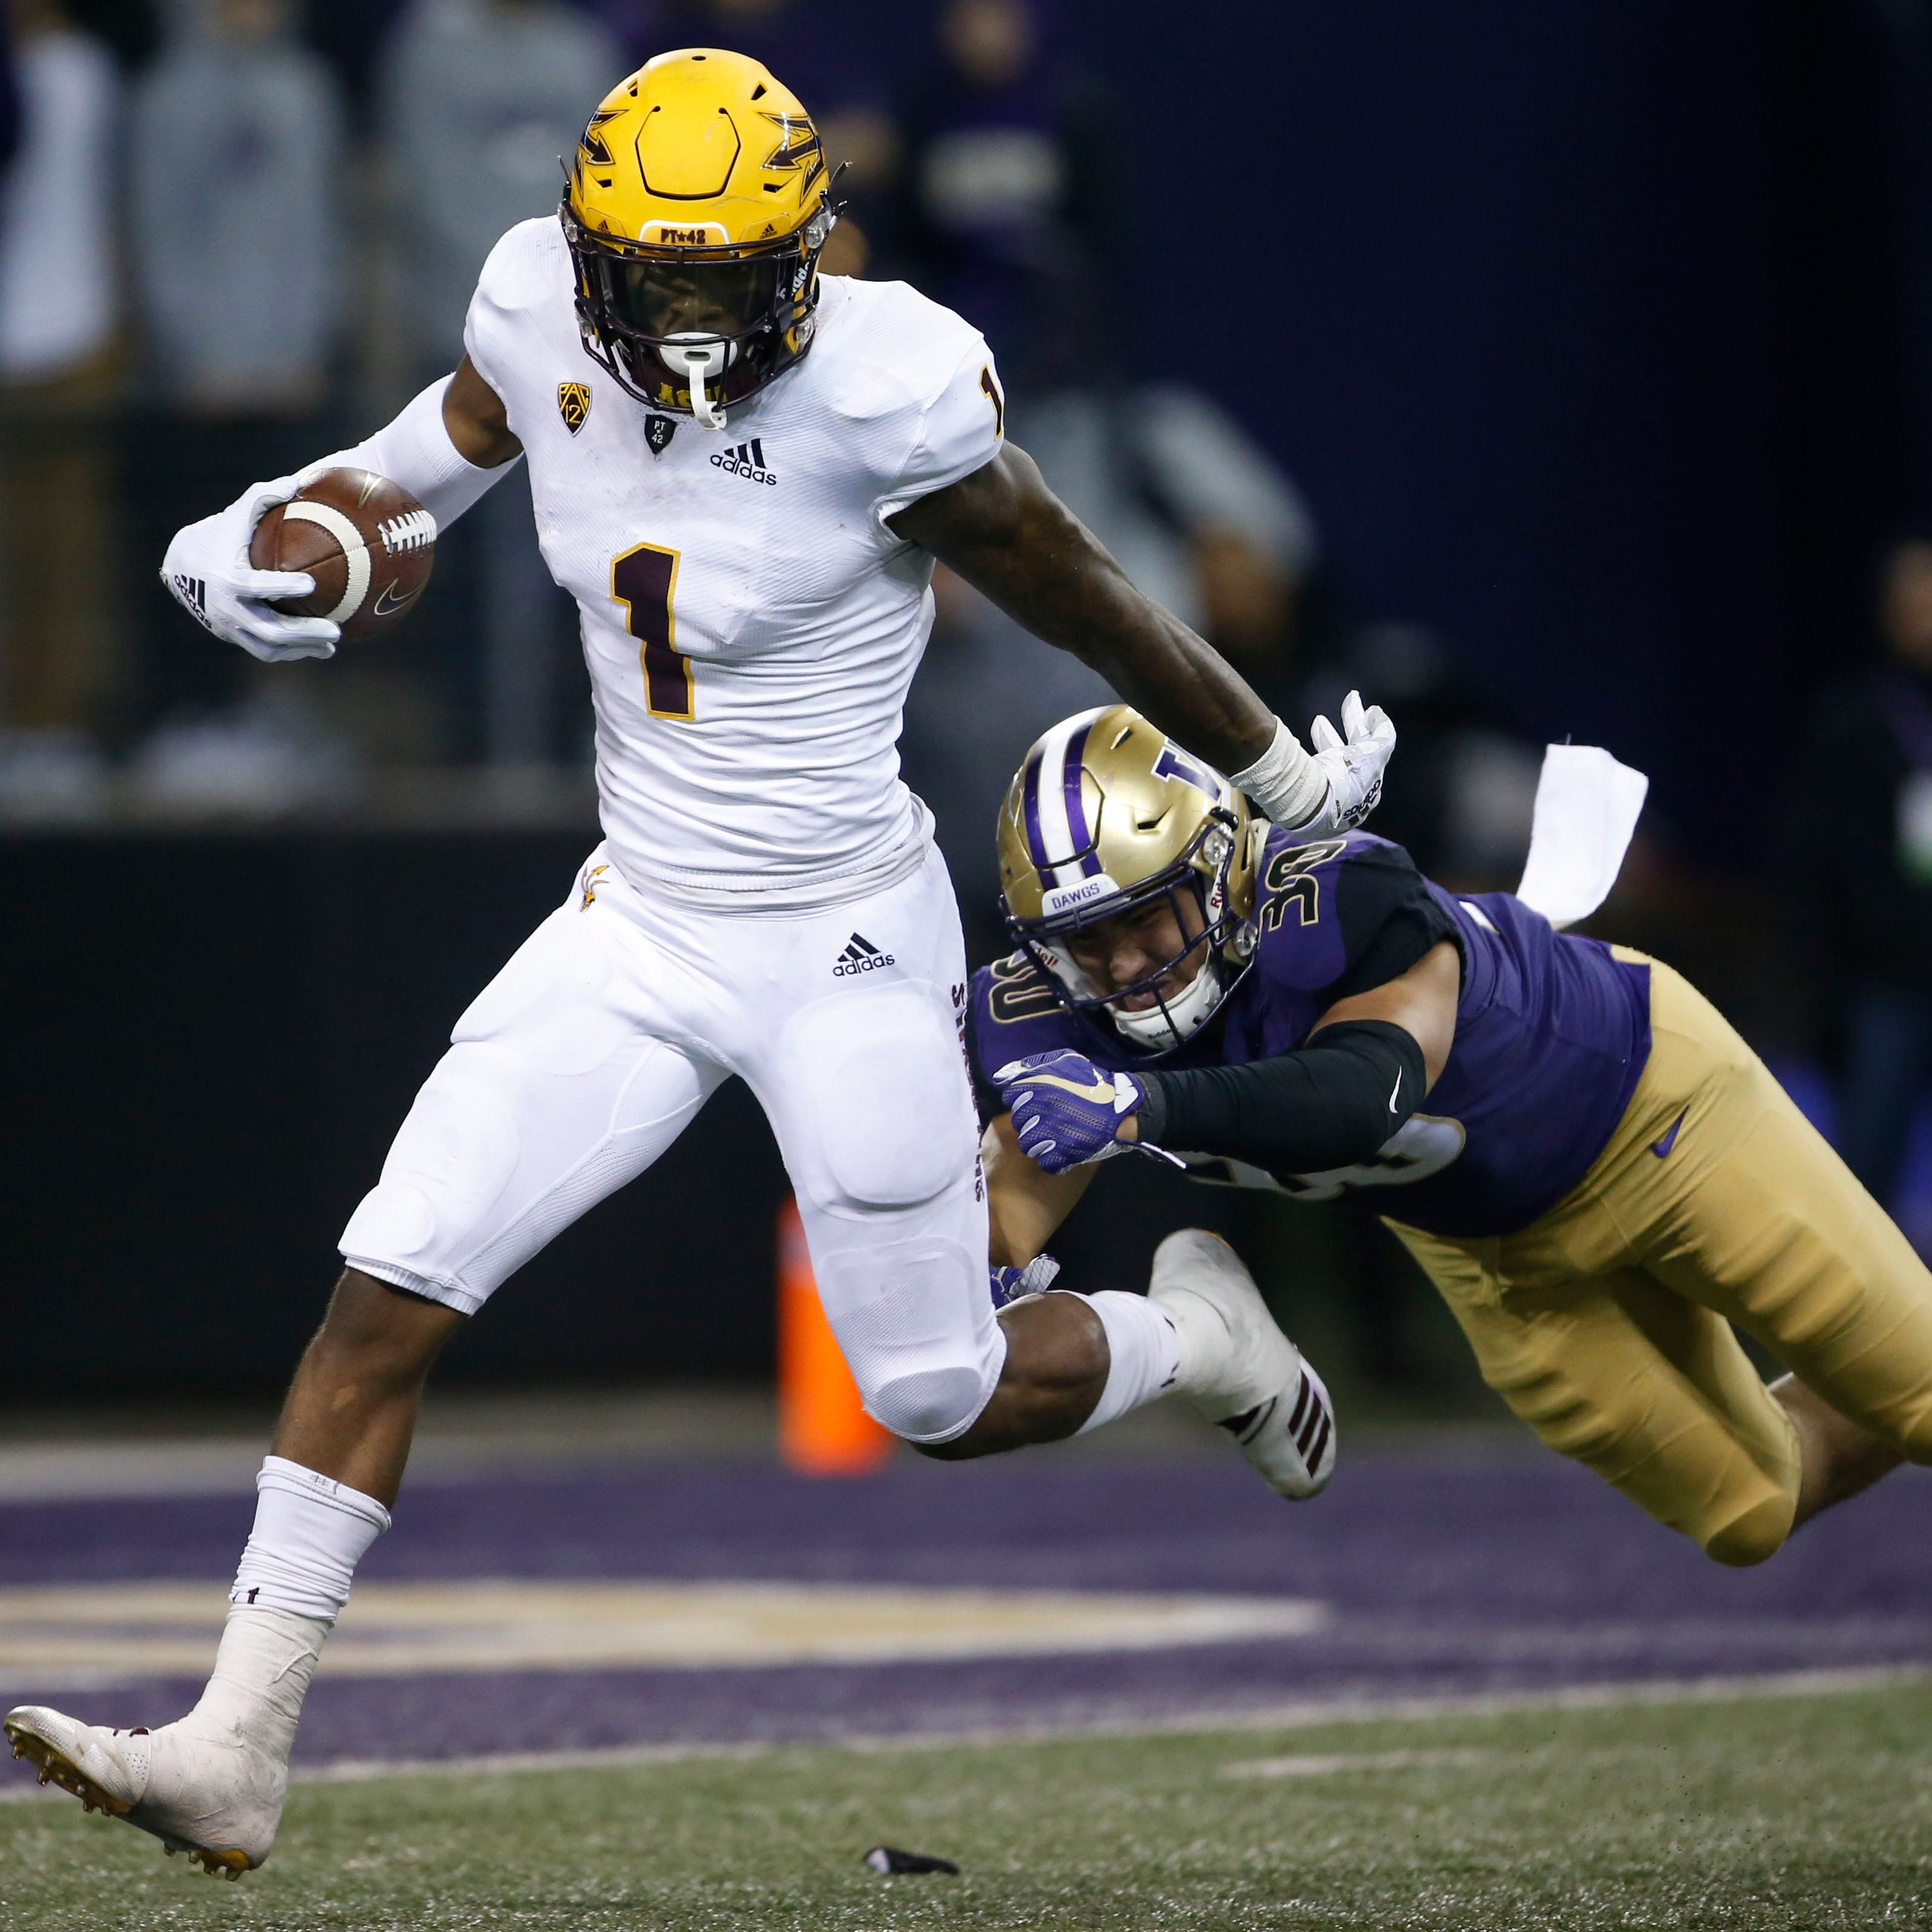 Moore: ASU football's defeat at Washington was more than just a loss